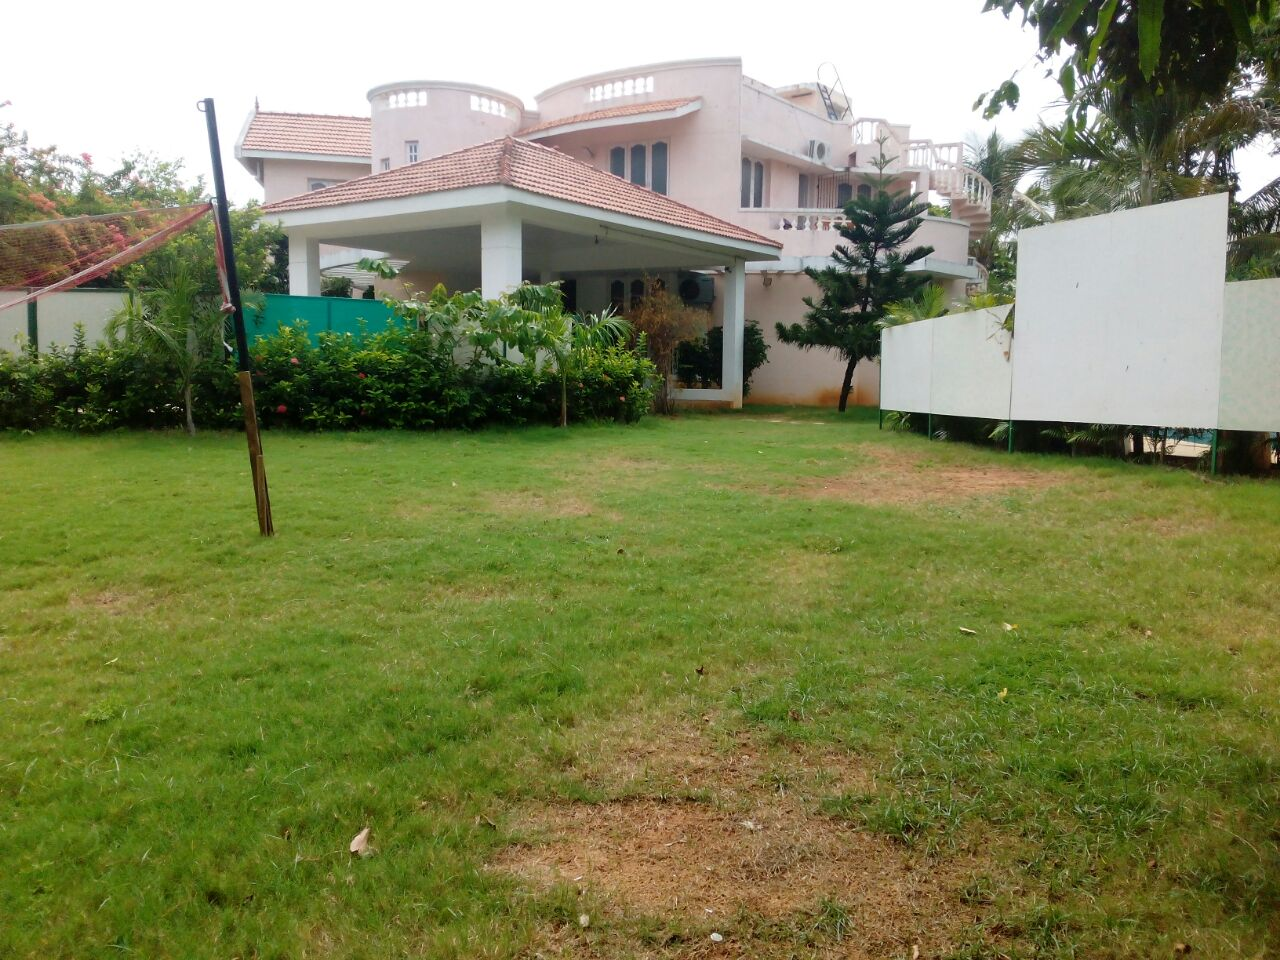 Swimming pool resorts mobile no 9381017742 by apple beach house and resorts beach house in for Cheap resorts in ecr with swimming pool